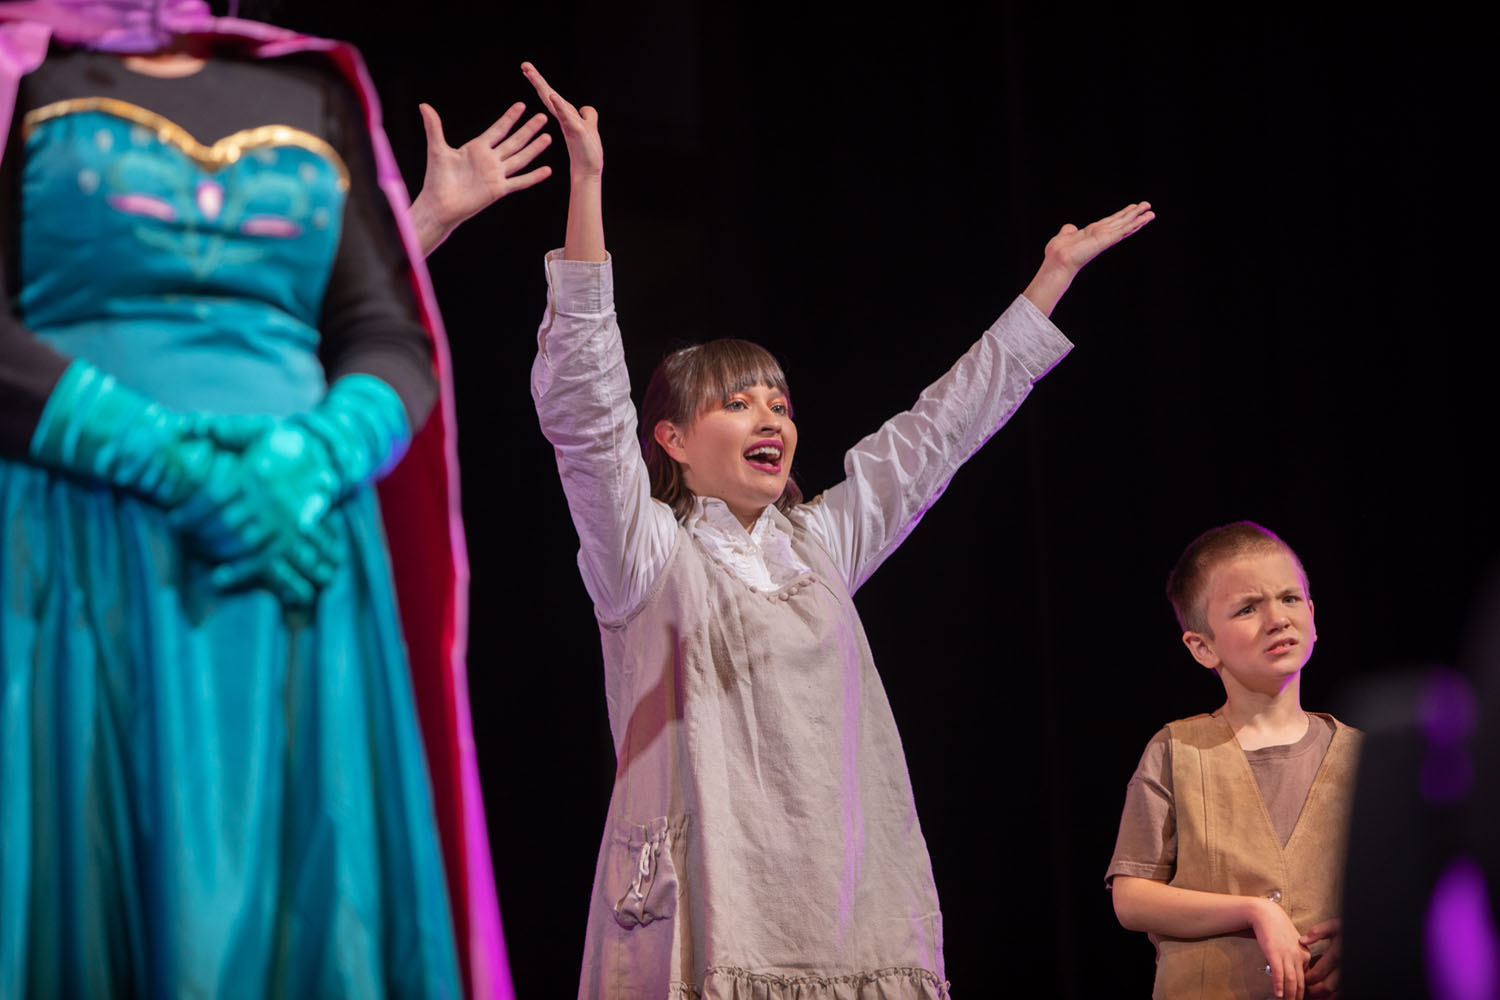 Alpine Community Theater performs Frozen on November 16, 2019. Photo by Sean Openshaw / www.SeanOpenshaw.com